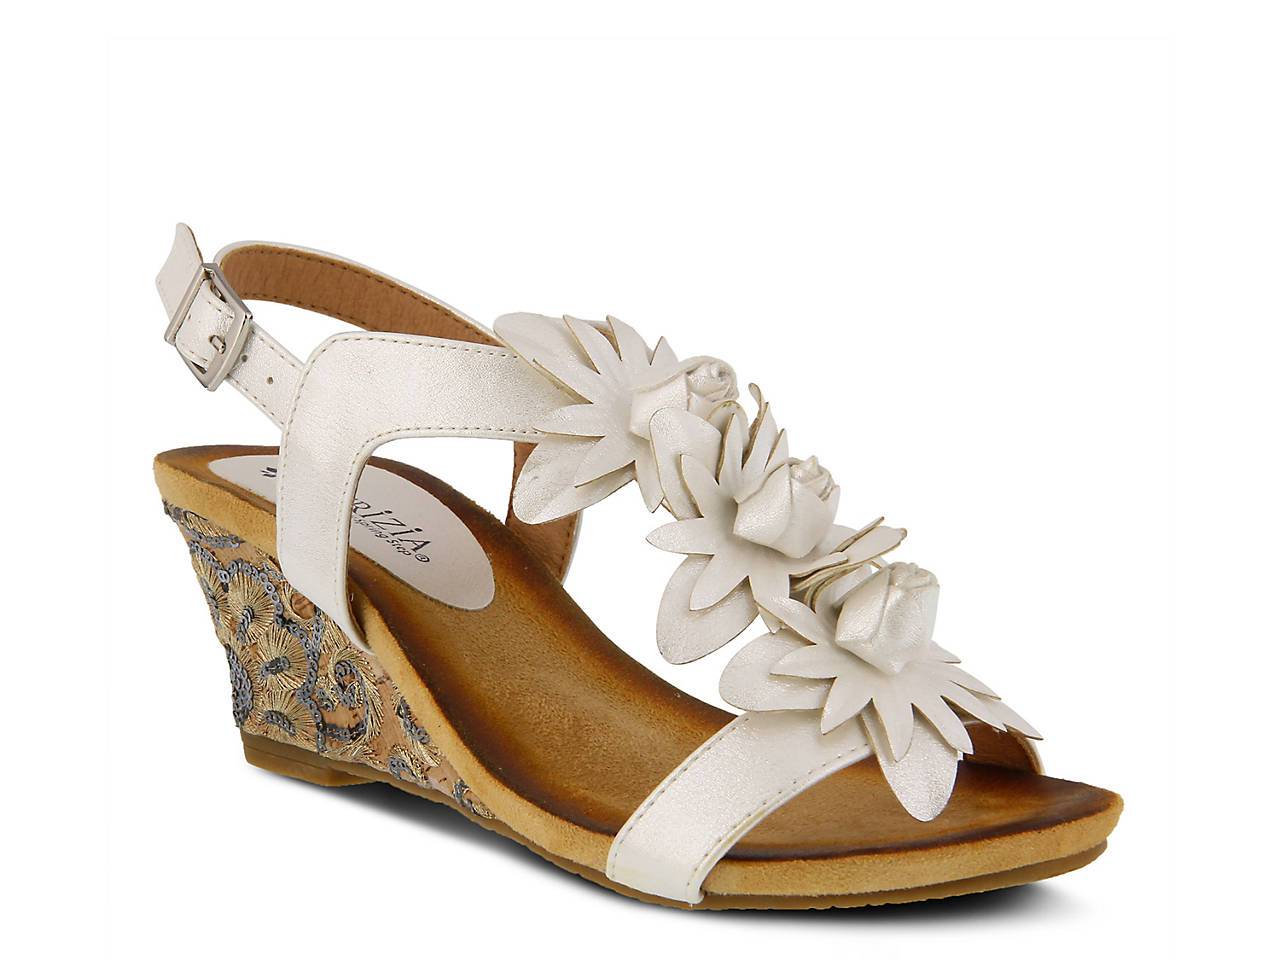 faae508d05d5 Patrizia by Spring Step Cutiquin Wedge Sandal Women s Shoes